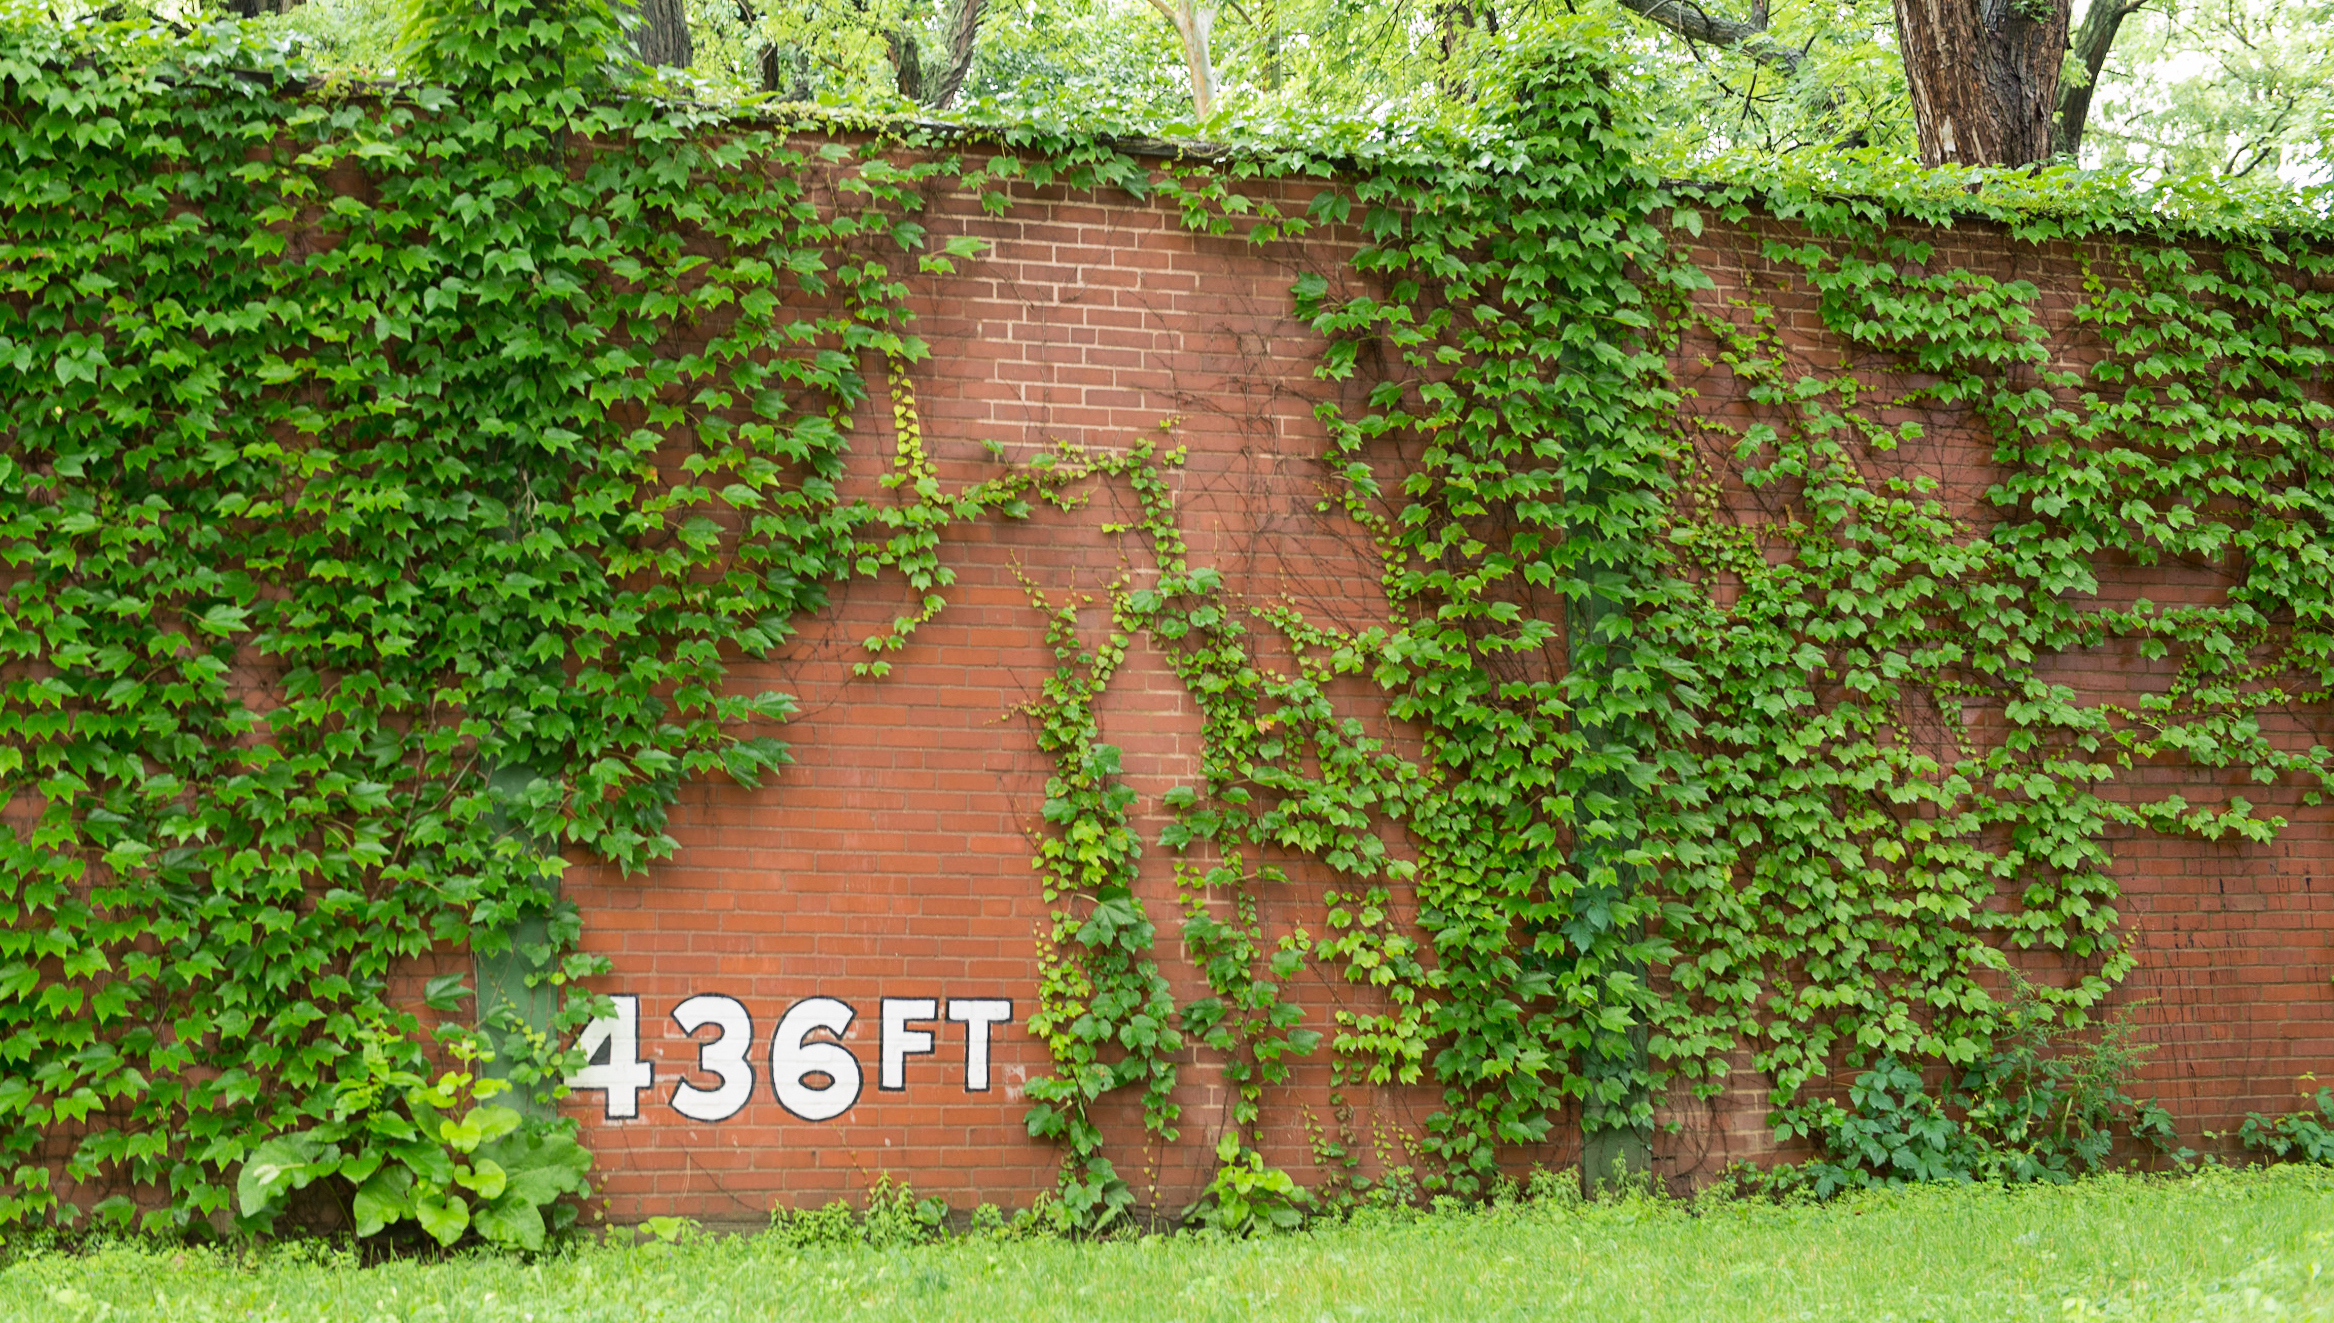 The outfield wall at Forbes Field, former home of the Pittsburgh Pirates baseball team